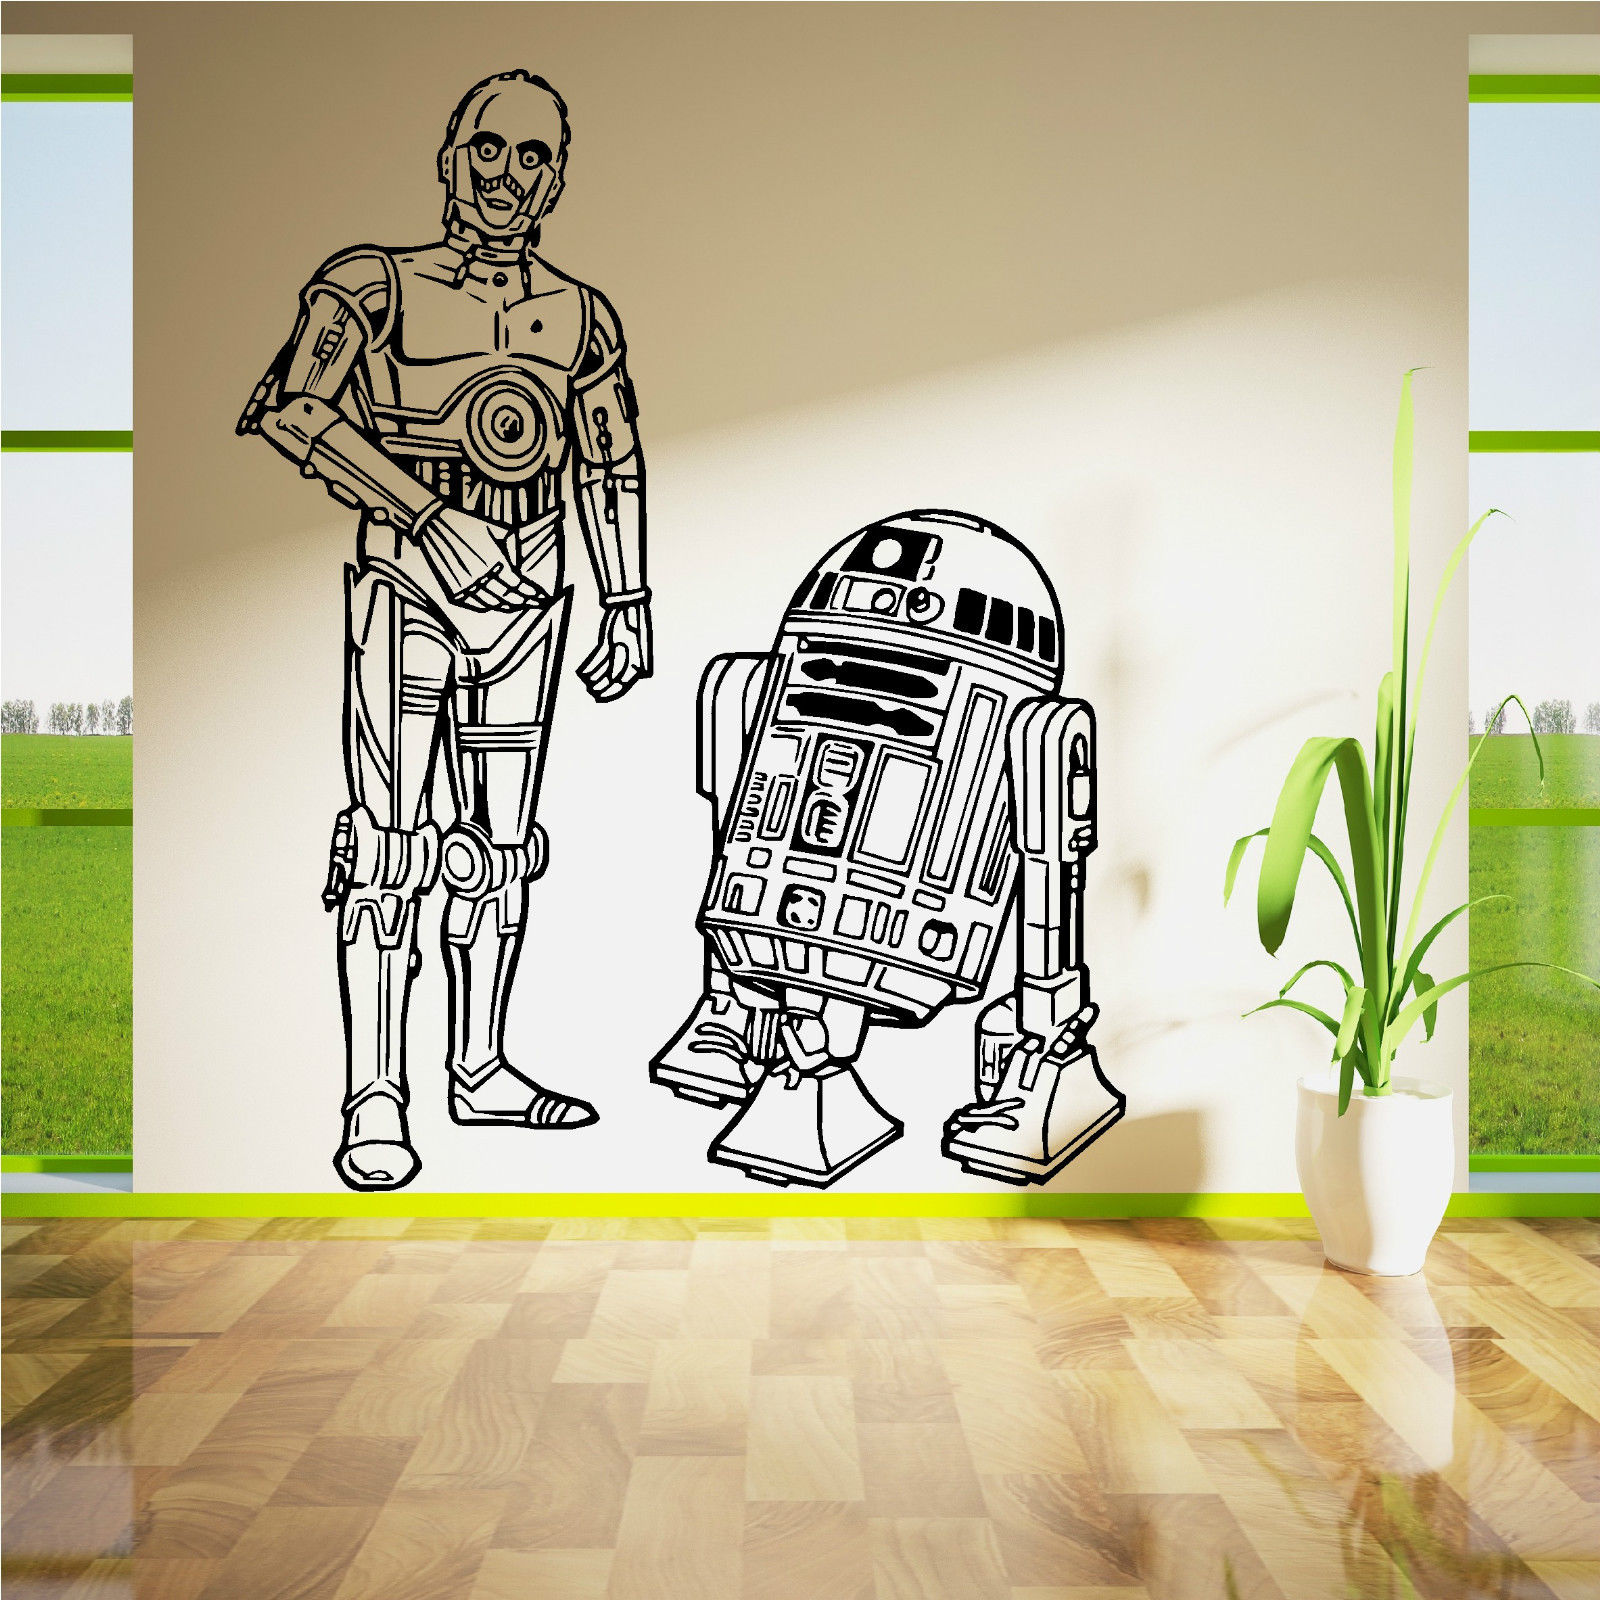 D253 STAR WARS R2D2 AND C3PO DROIDS DUO VINYL WALL ART ROOM STICKER DECAL